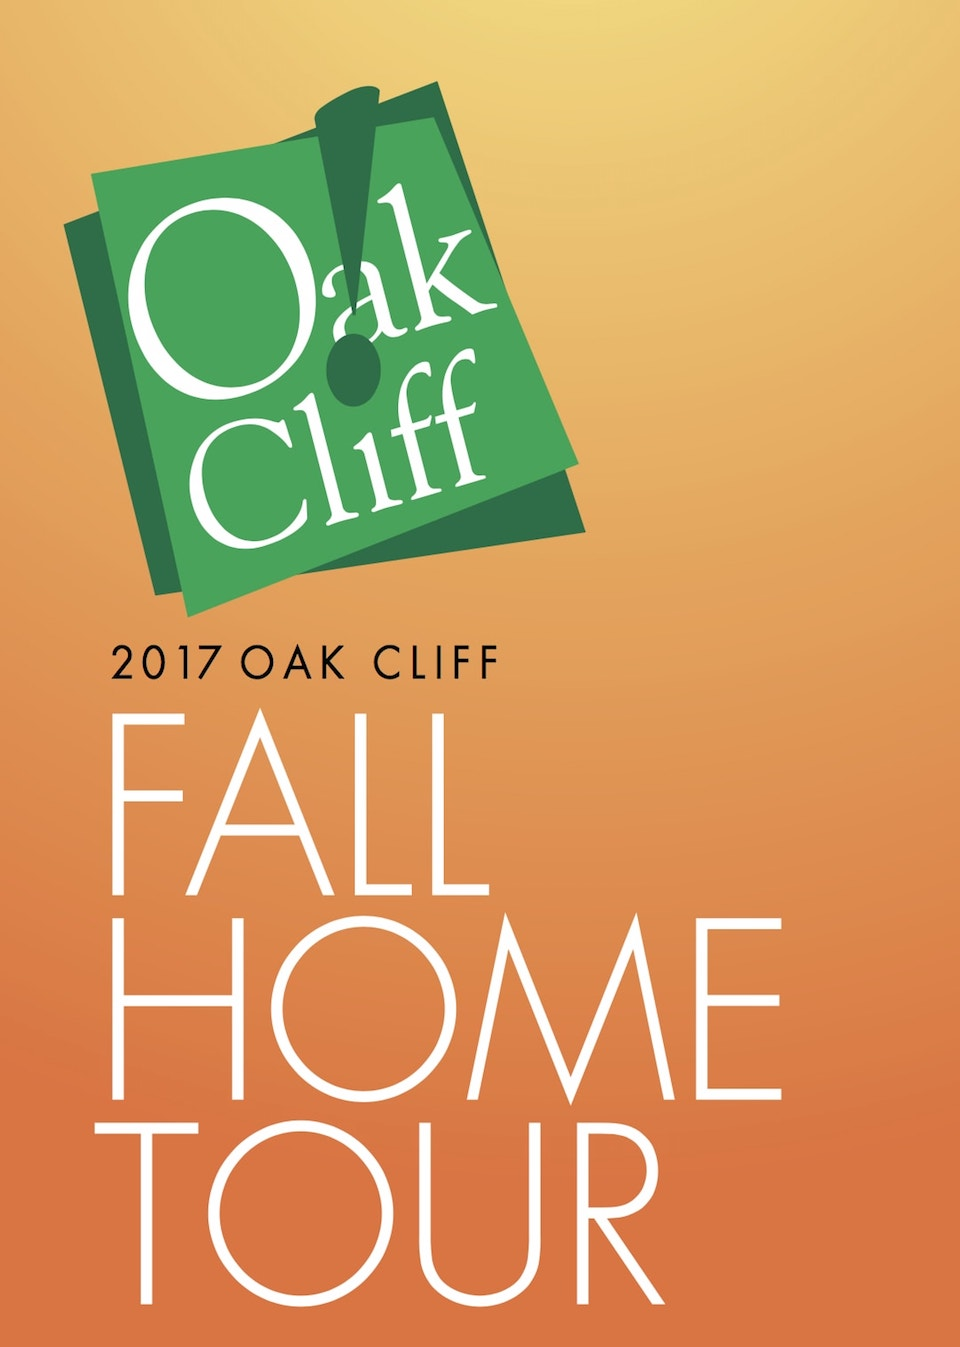 Explore Oak Cliff This Weekend